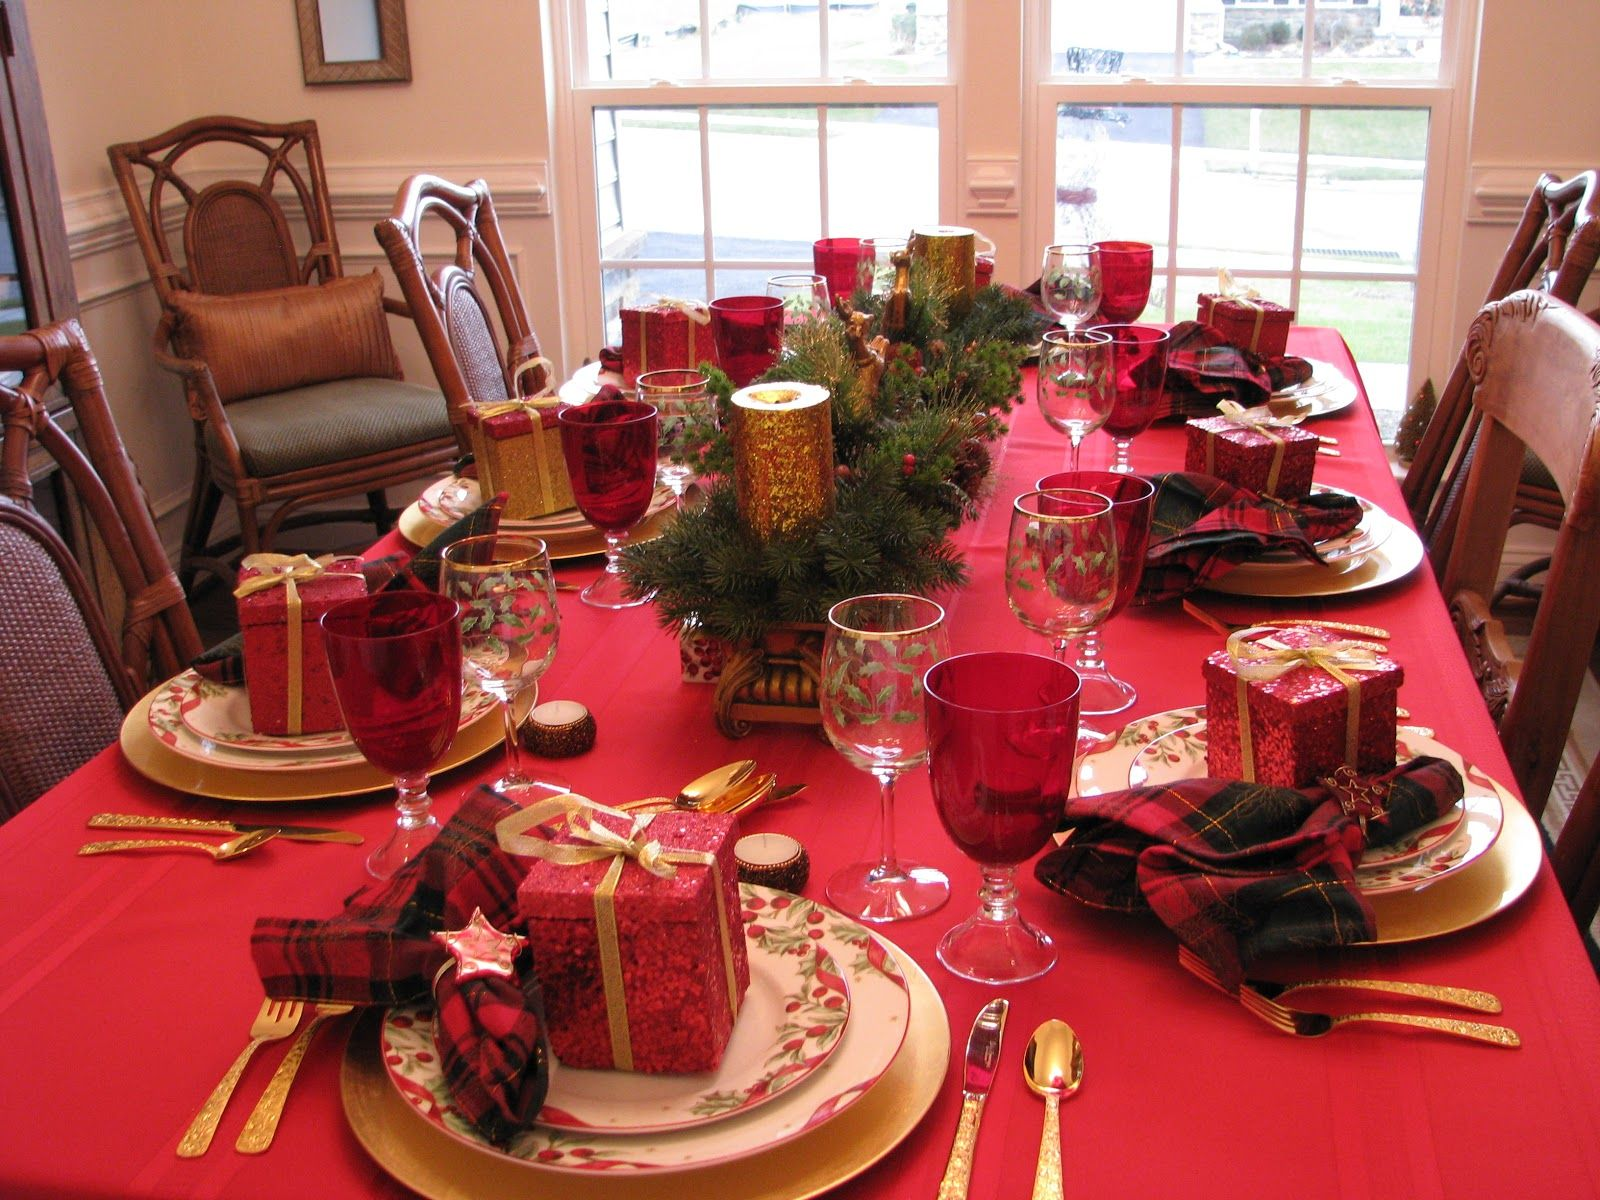 Wonderful Christmas table decoration. Red and gold. & Wonderful Christmas table decoration. Red and gold. | Christmas ...